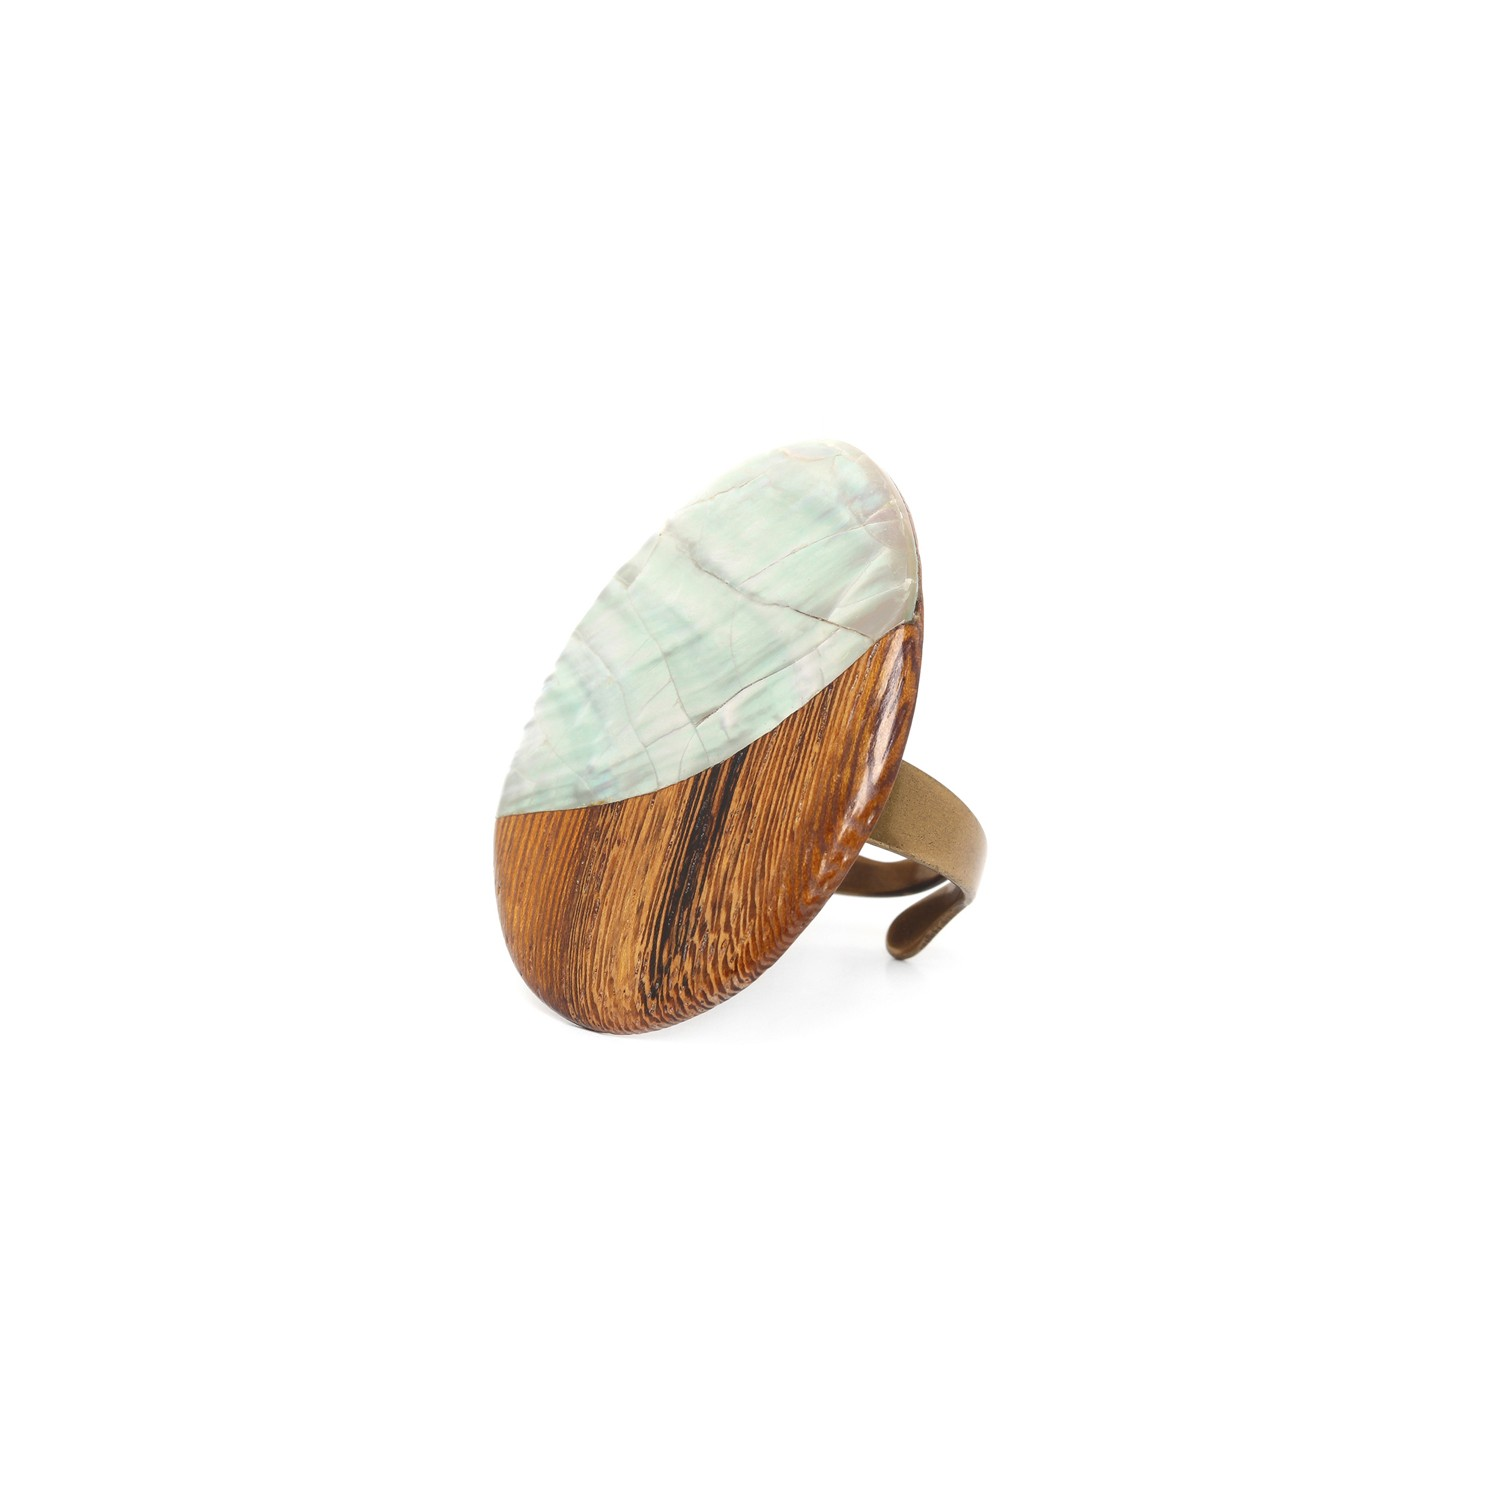 FOREST THERAPY bague nacre & bois